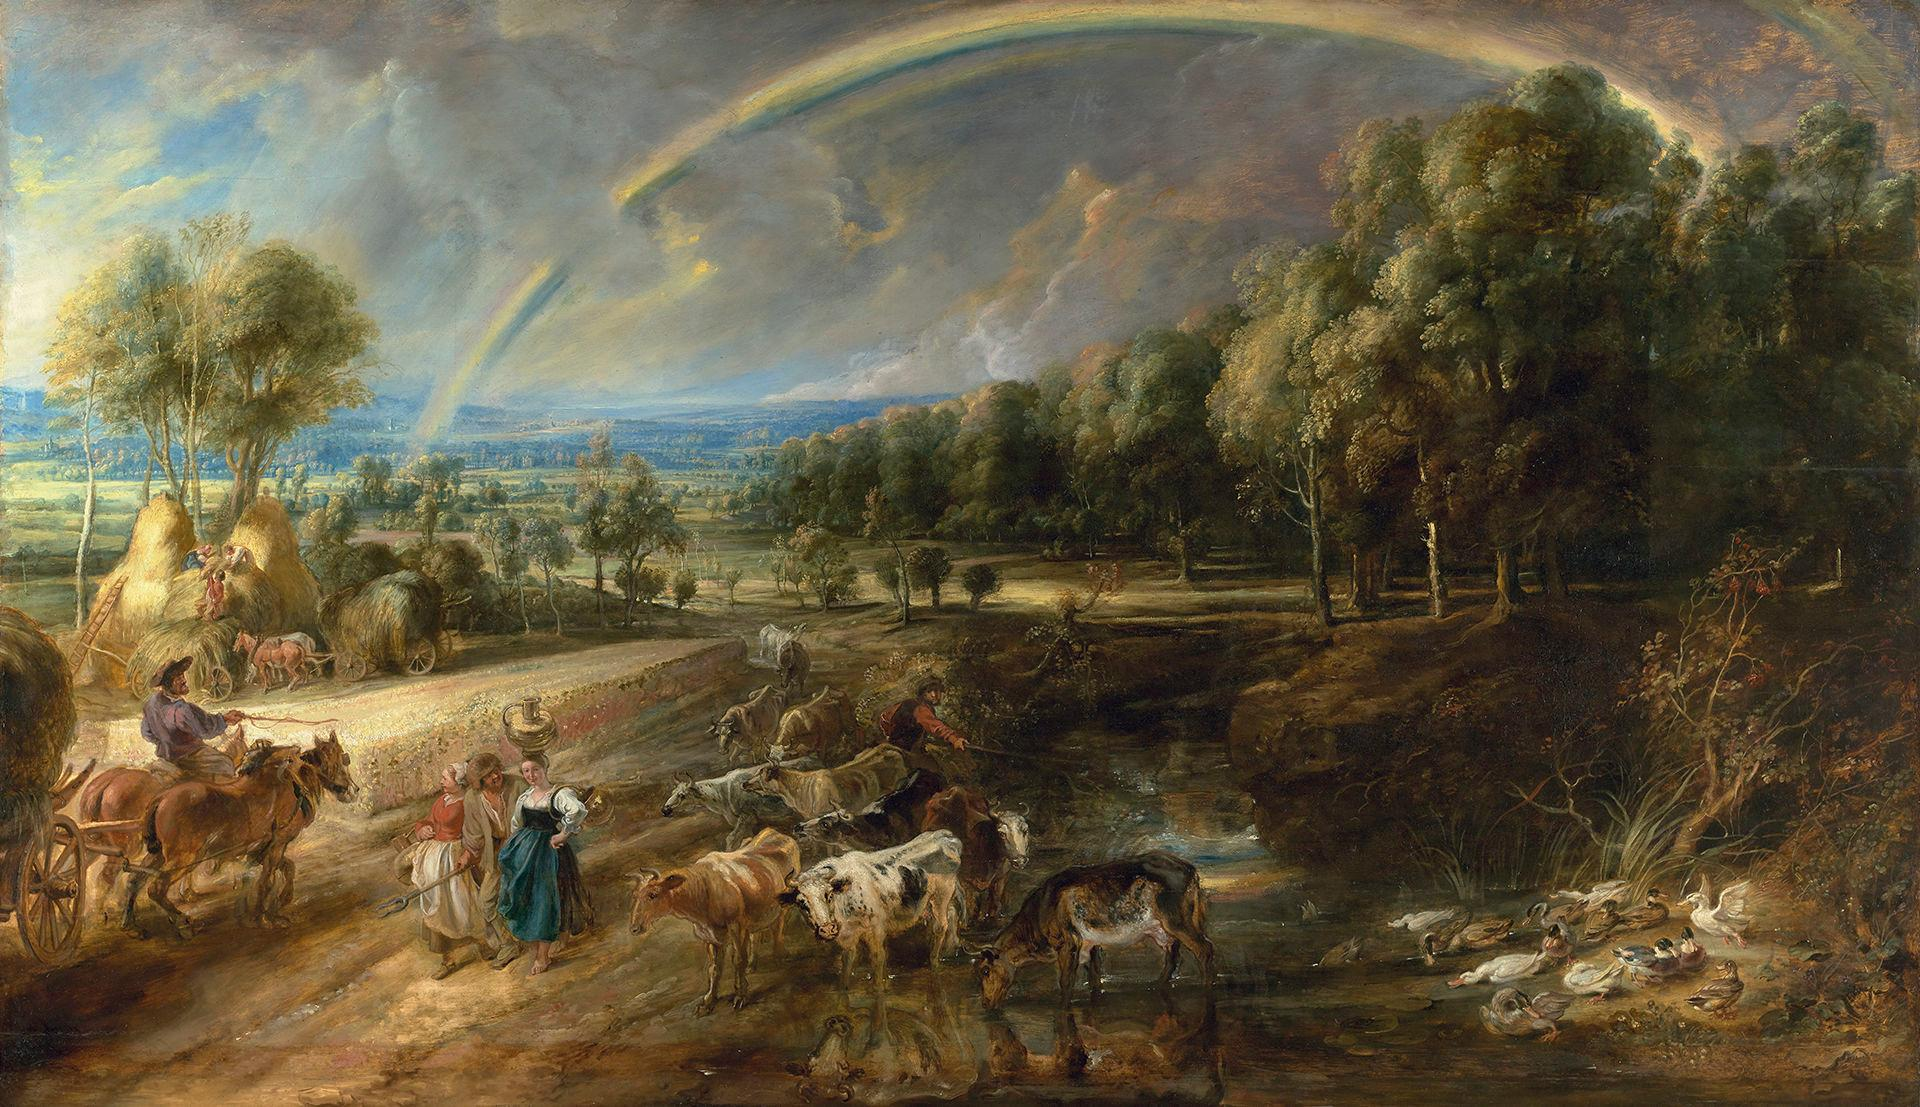 Rubens landscapes to be reunited for display after centuries apart